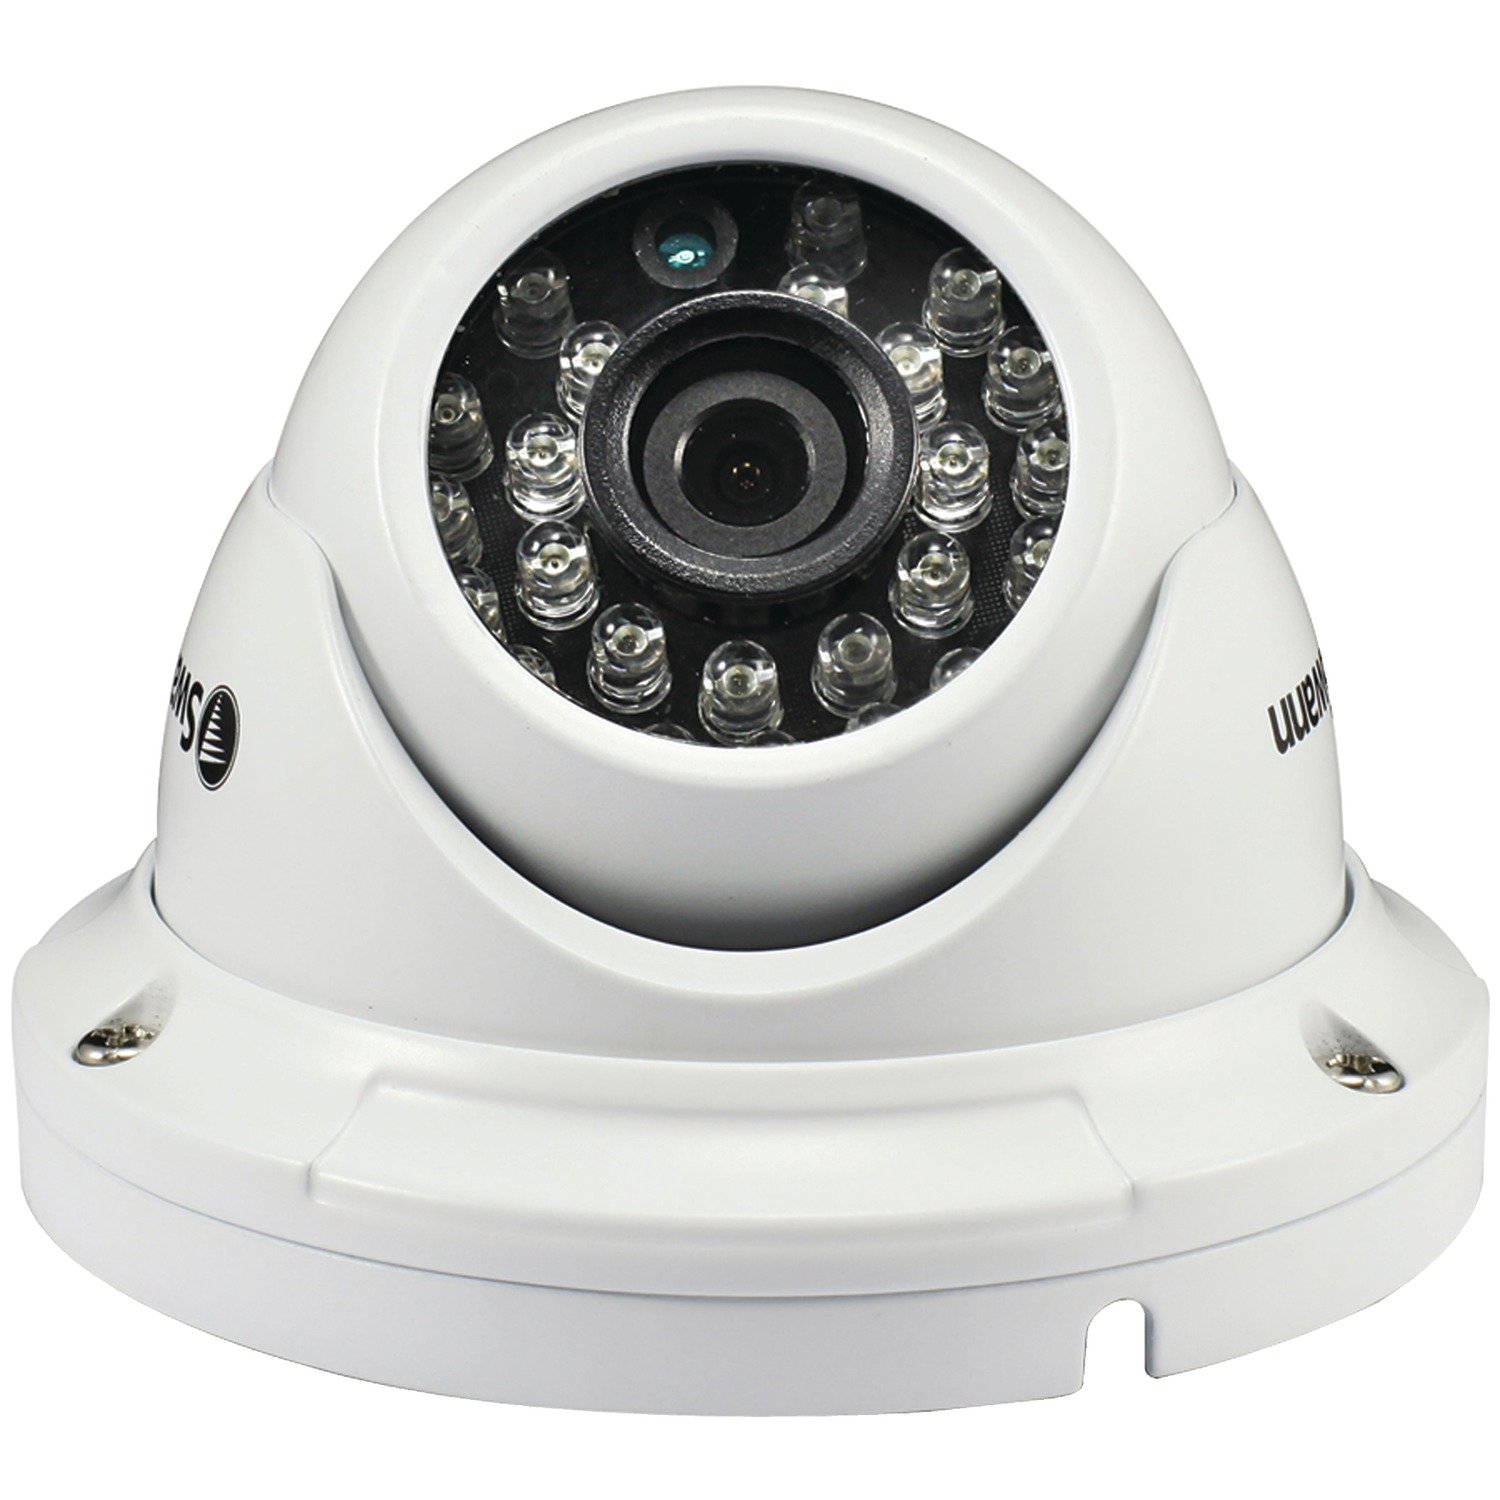 Swann 1080P Hybrid AHD and TVI Capable Dome Camera, White (SWPRO-H856CAM-US)